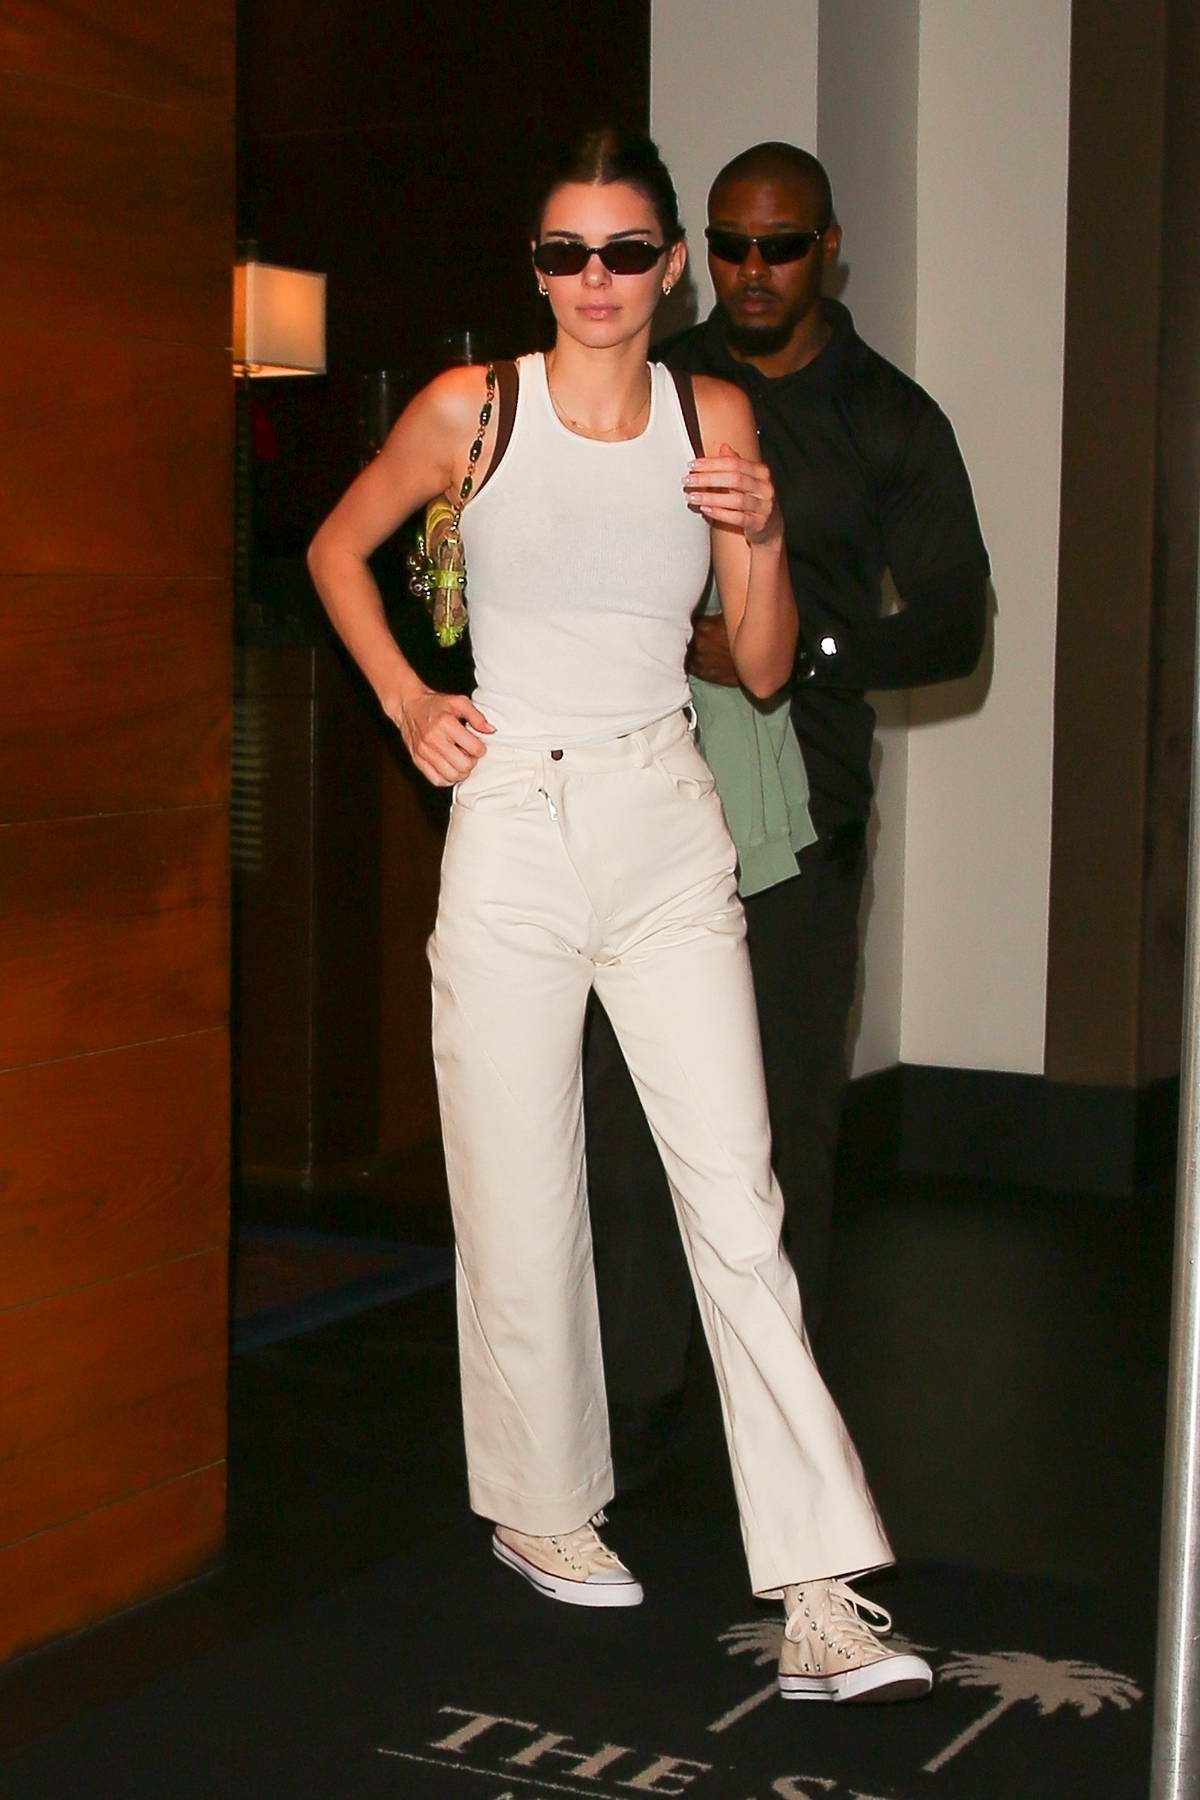 Kendall Jenner dressed all-white as she leaves The Setai Hotel in Miami, Florida